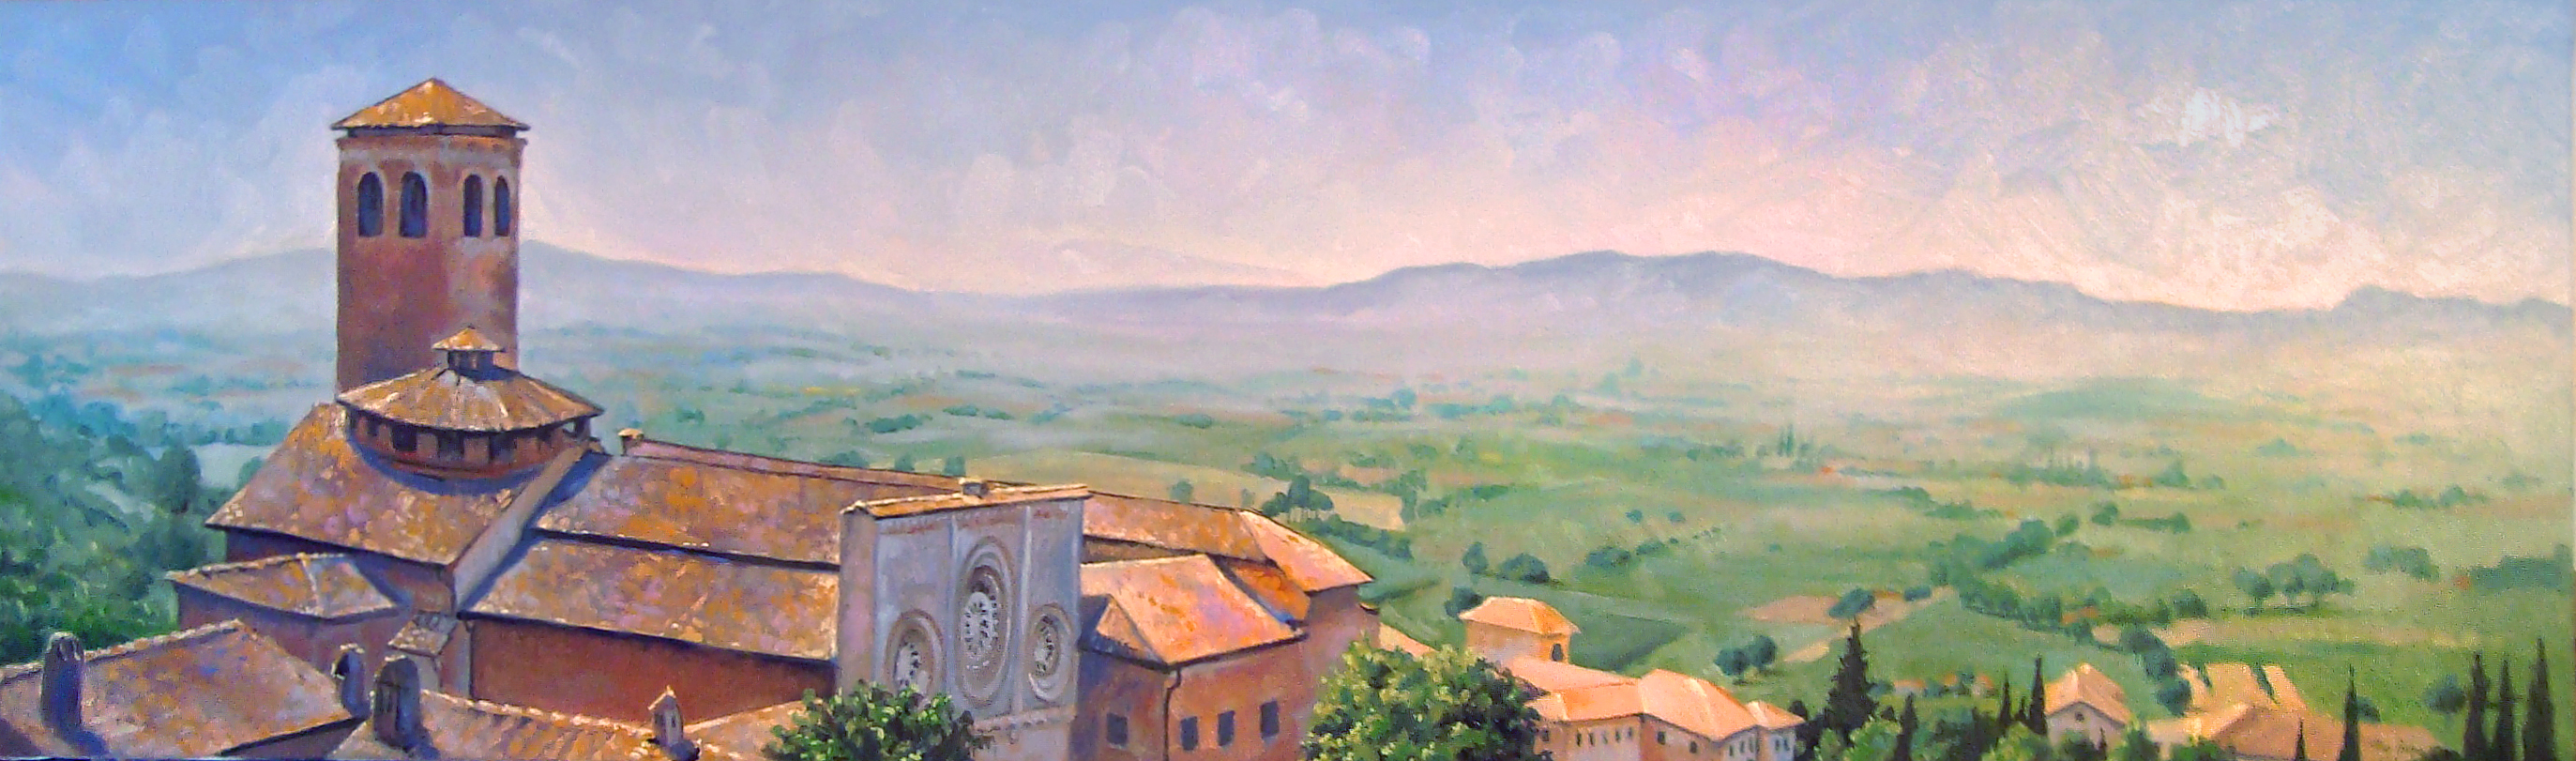 Assisi landscape painting '09